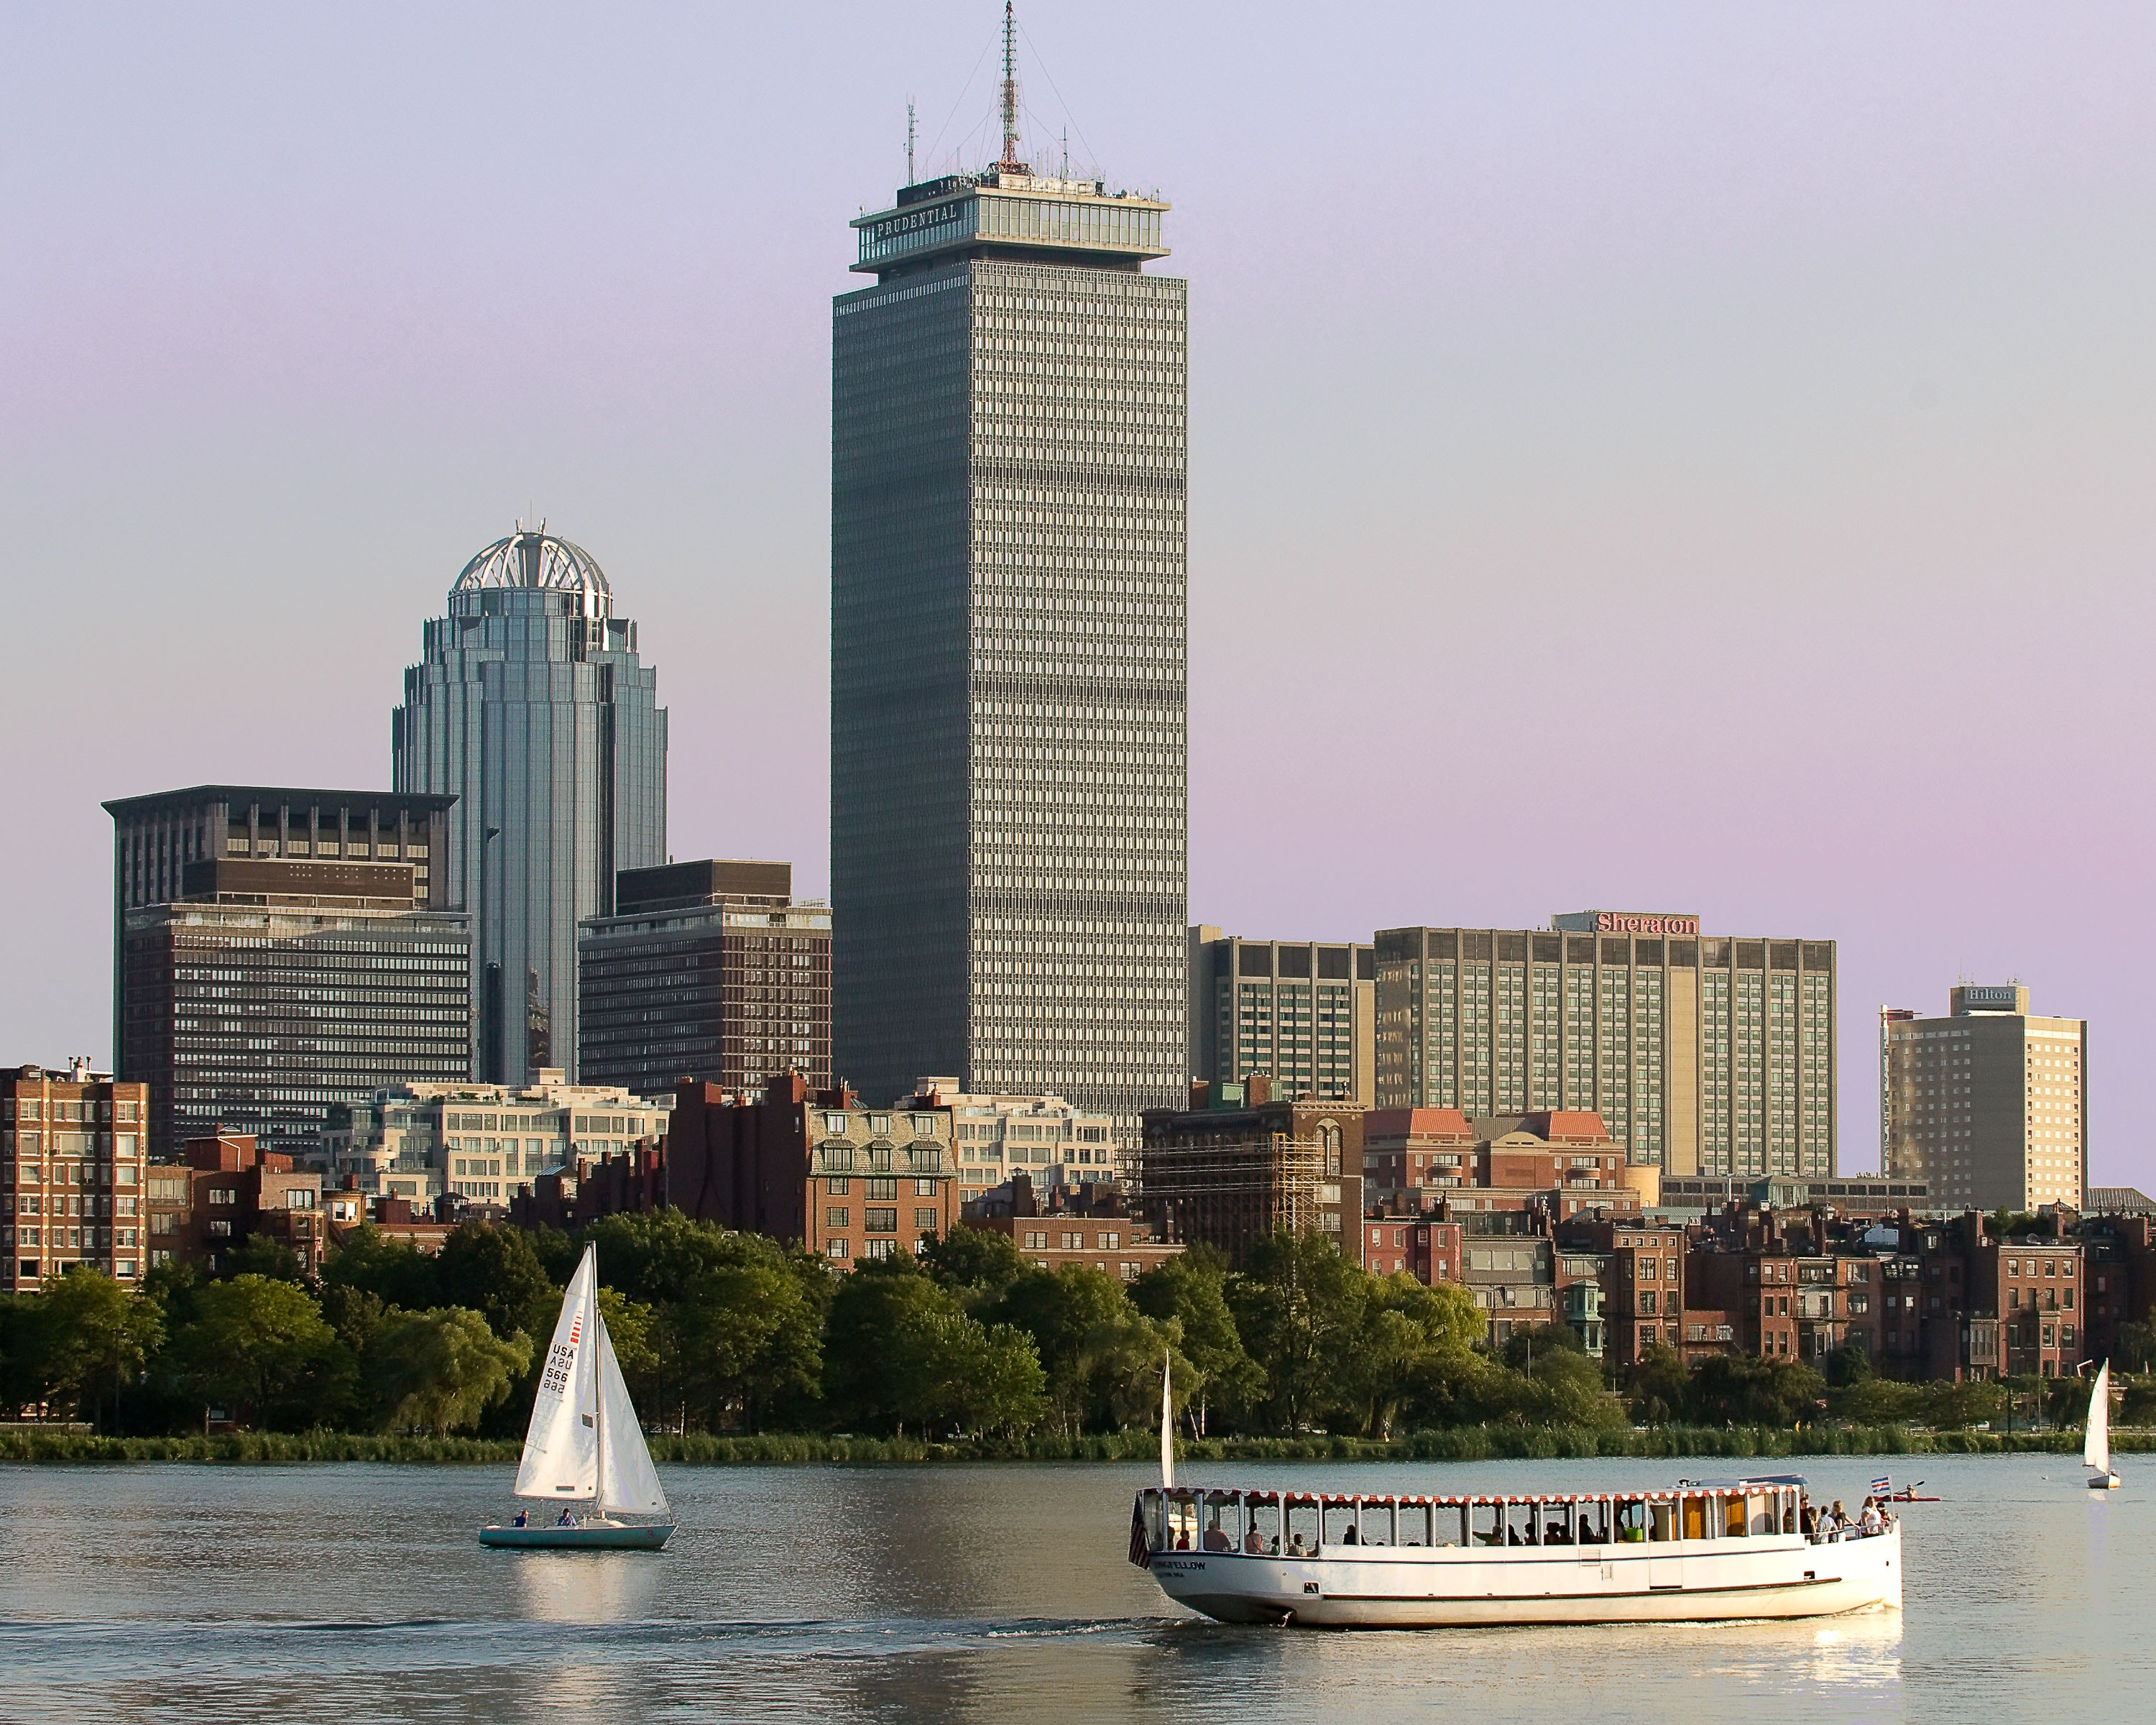 Charles River in Boston, Cruise